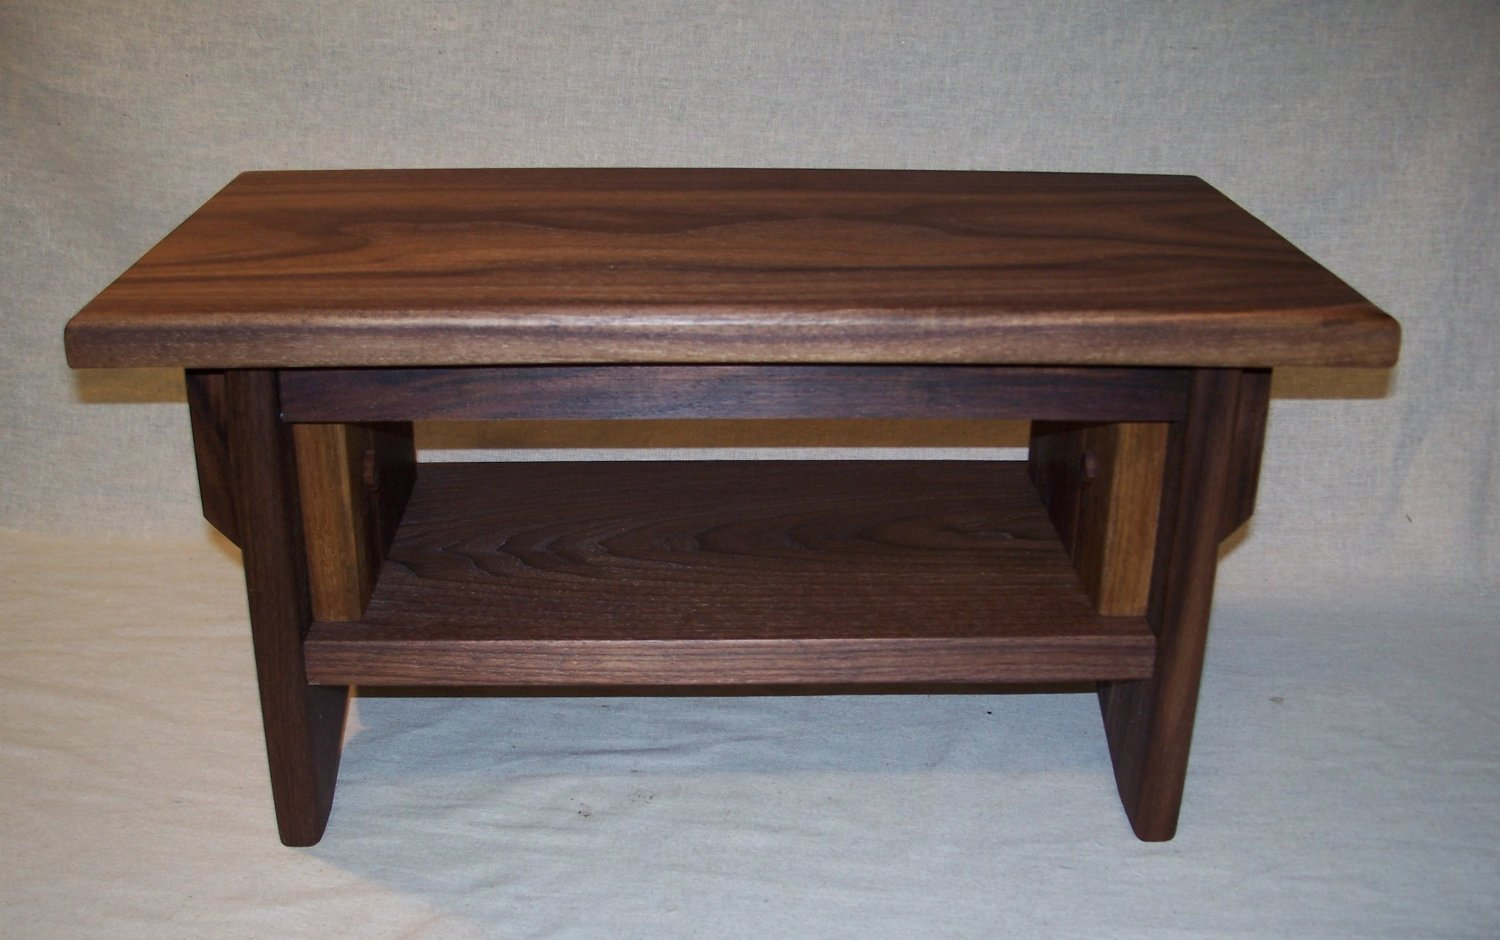 Amazon.com: Deluxe Personal Altar With Shelf   EarthBench   Solid WALNUT  Construction For Meditation, Prayer, Or Contemplative Studies.: Kitchen U0026  Dining